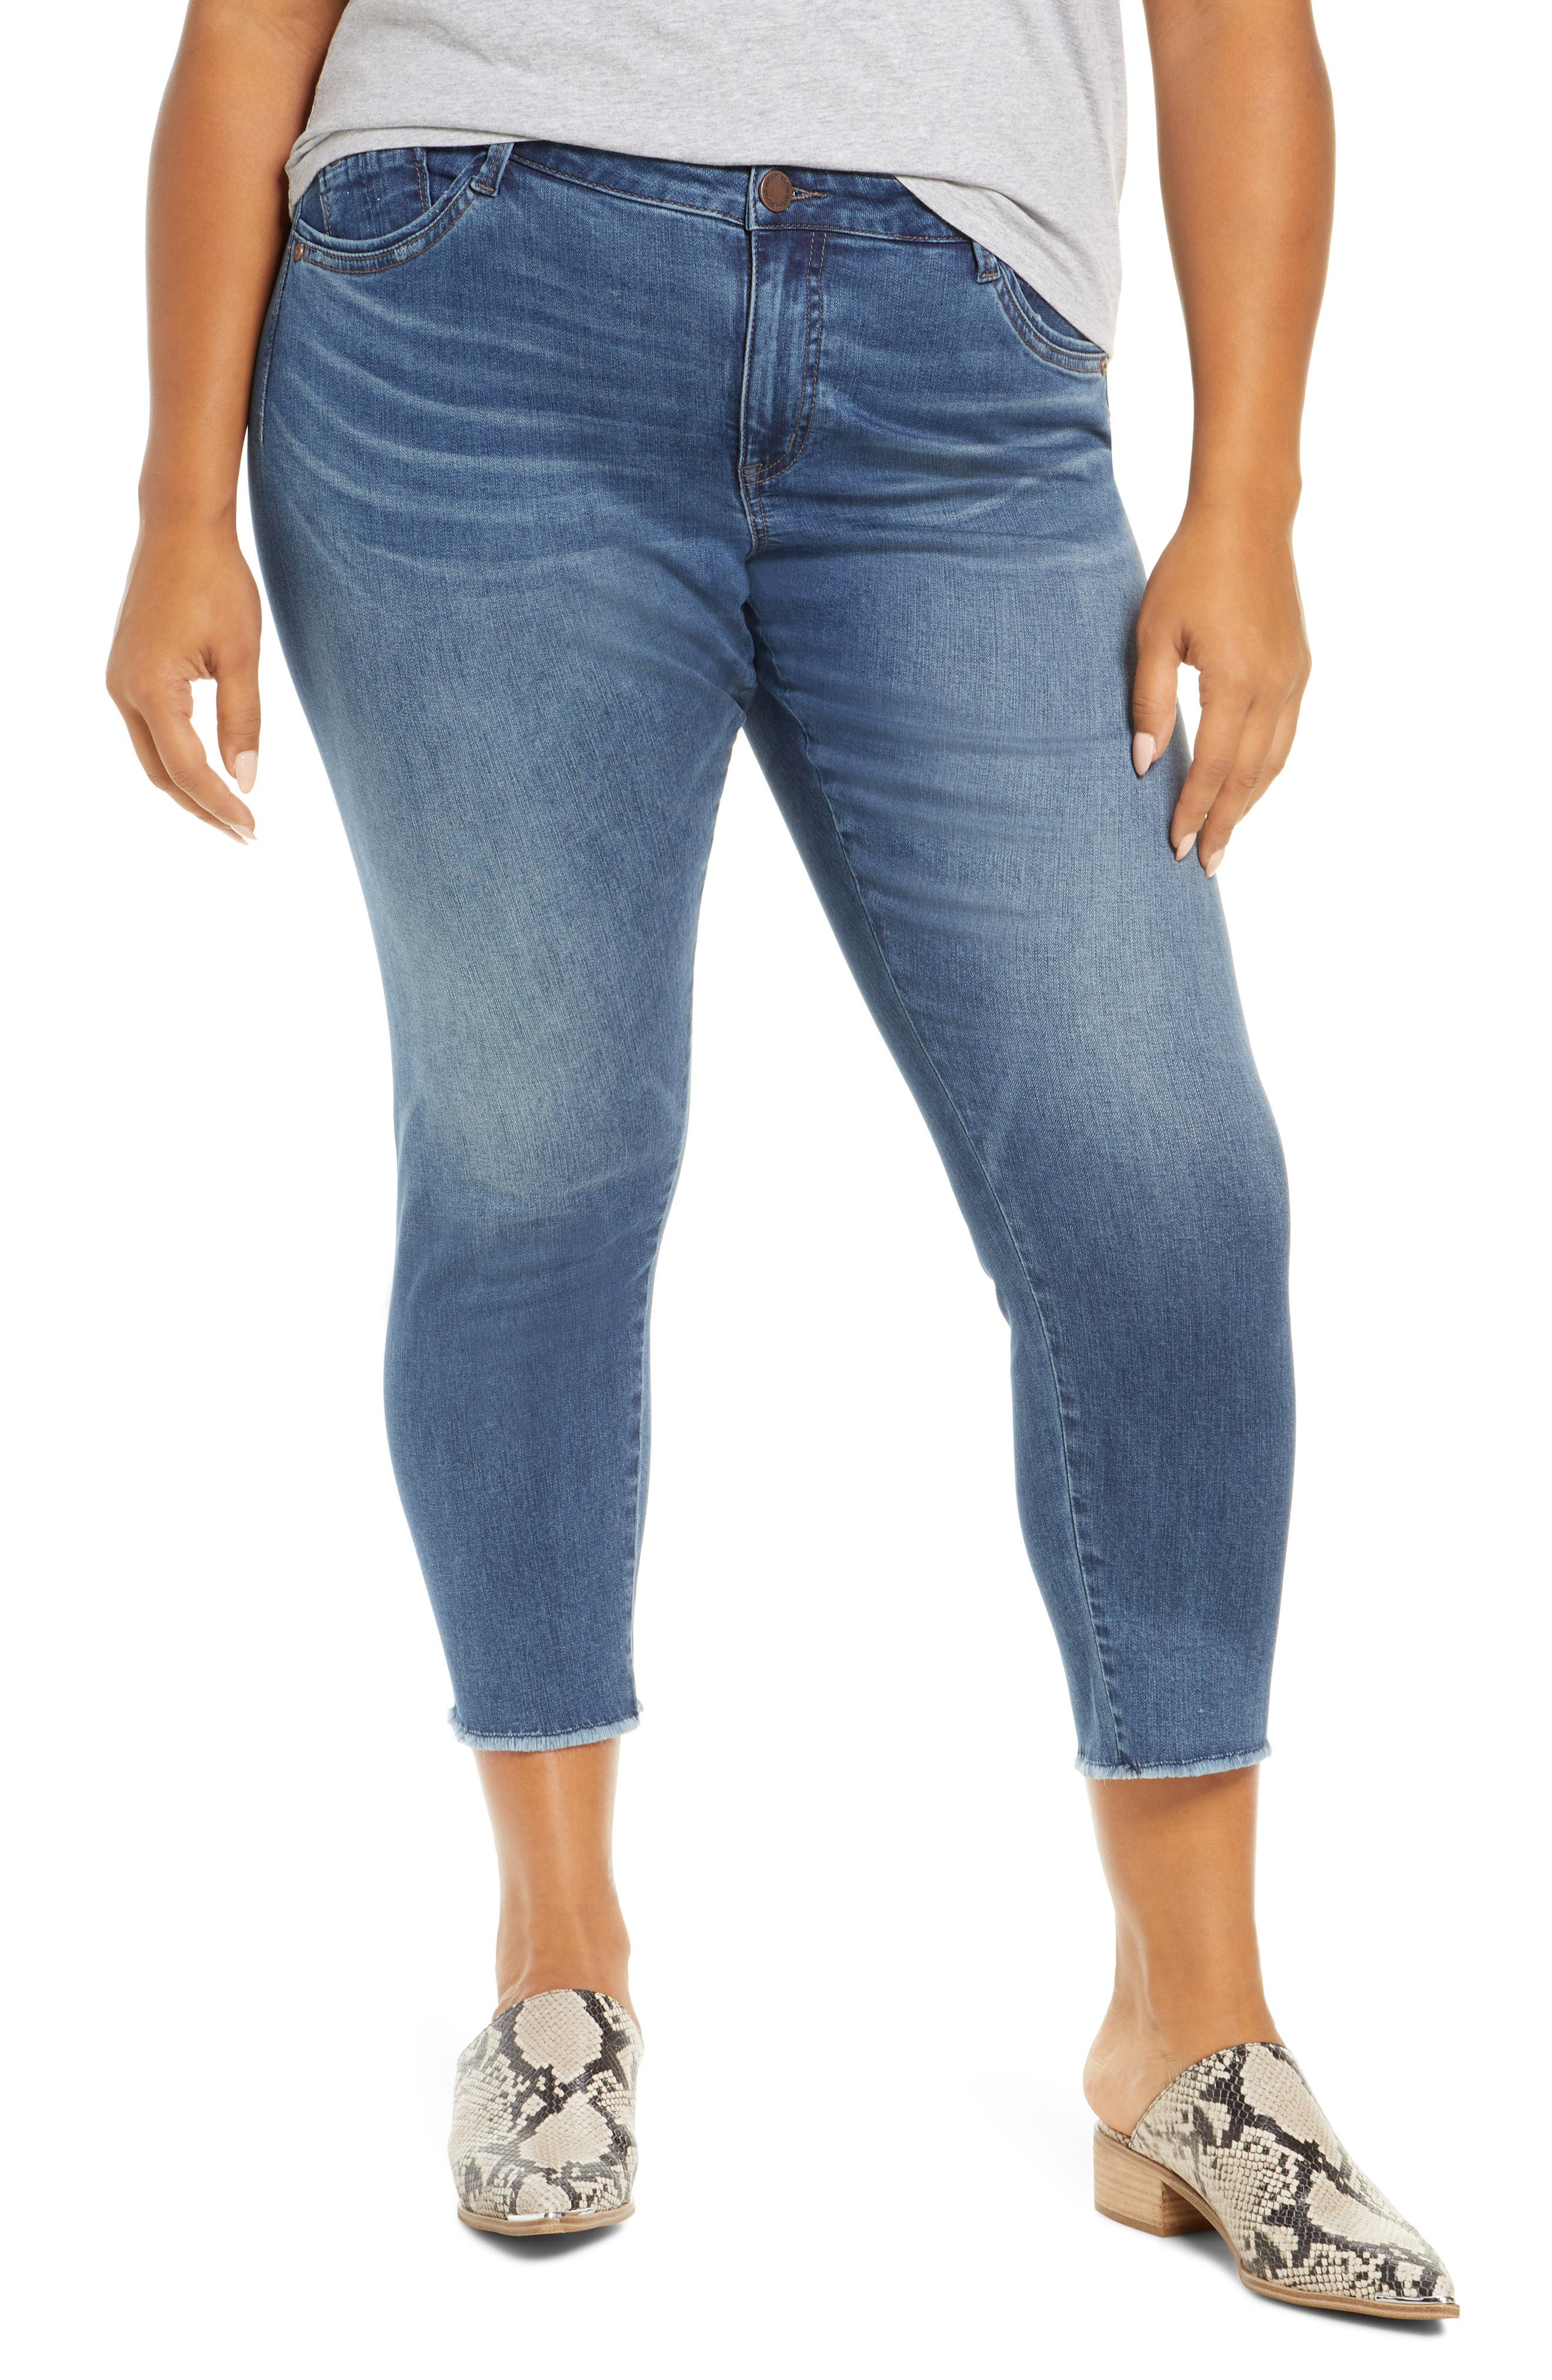 Seamless sides create a smooth, comfortable fit while frayed hems and a worn-in wash put these stretch-denim jeans right on trend. Style Name: Wit & Wisdom Seamless High Waist Raw Ankle Skimmer Jeans (Plus Size) (Nordstrom Exclusive). Style Number: 5972713. Available in stores.